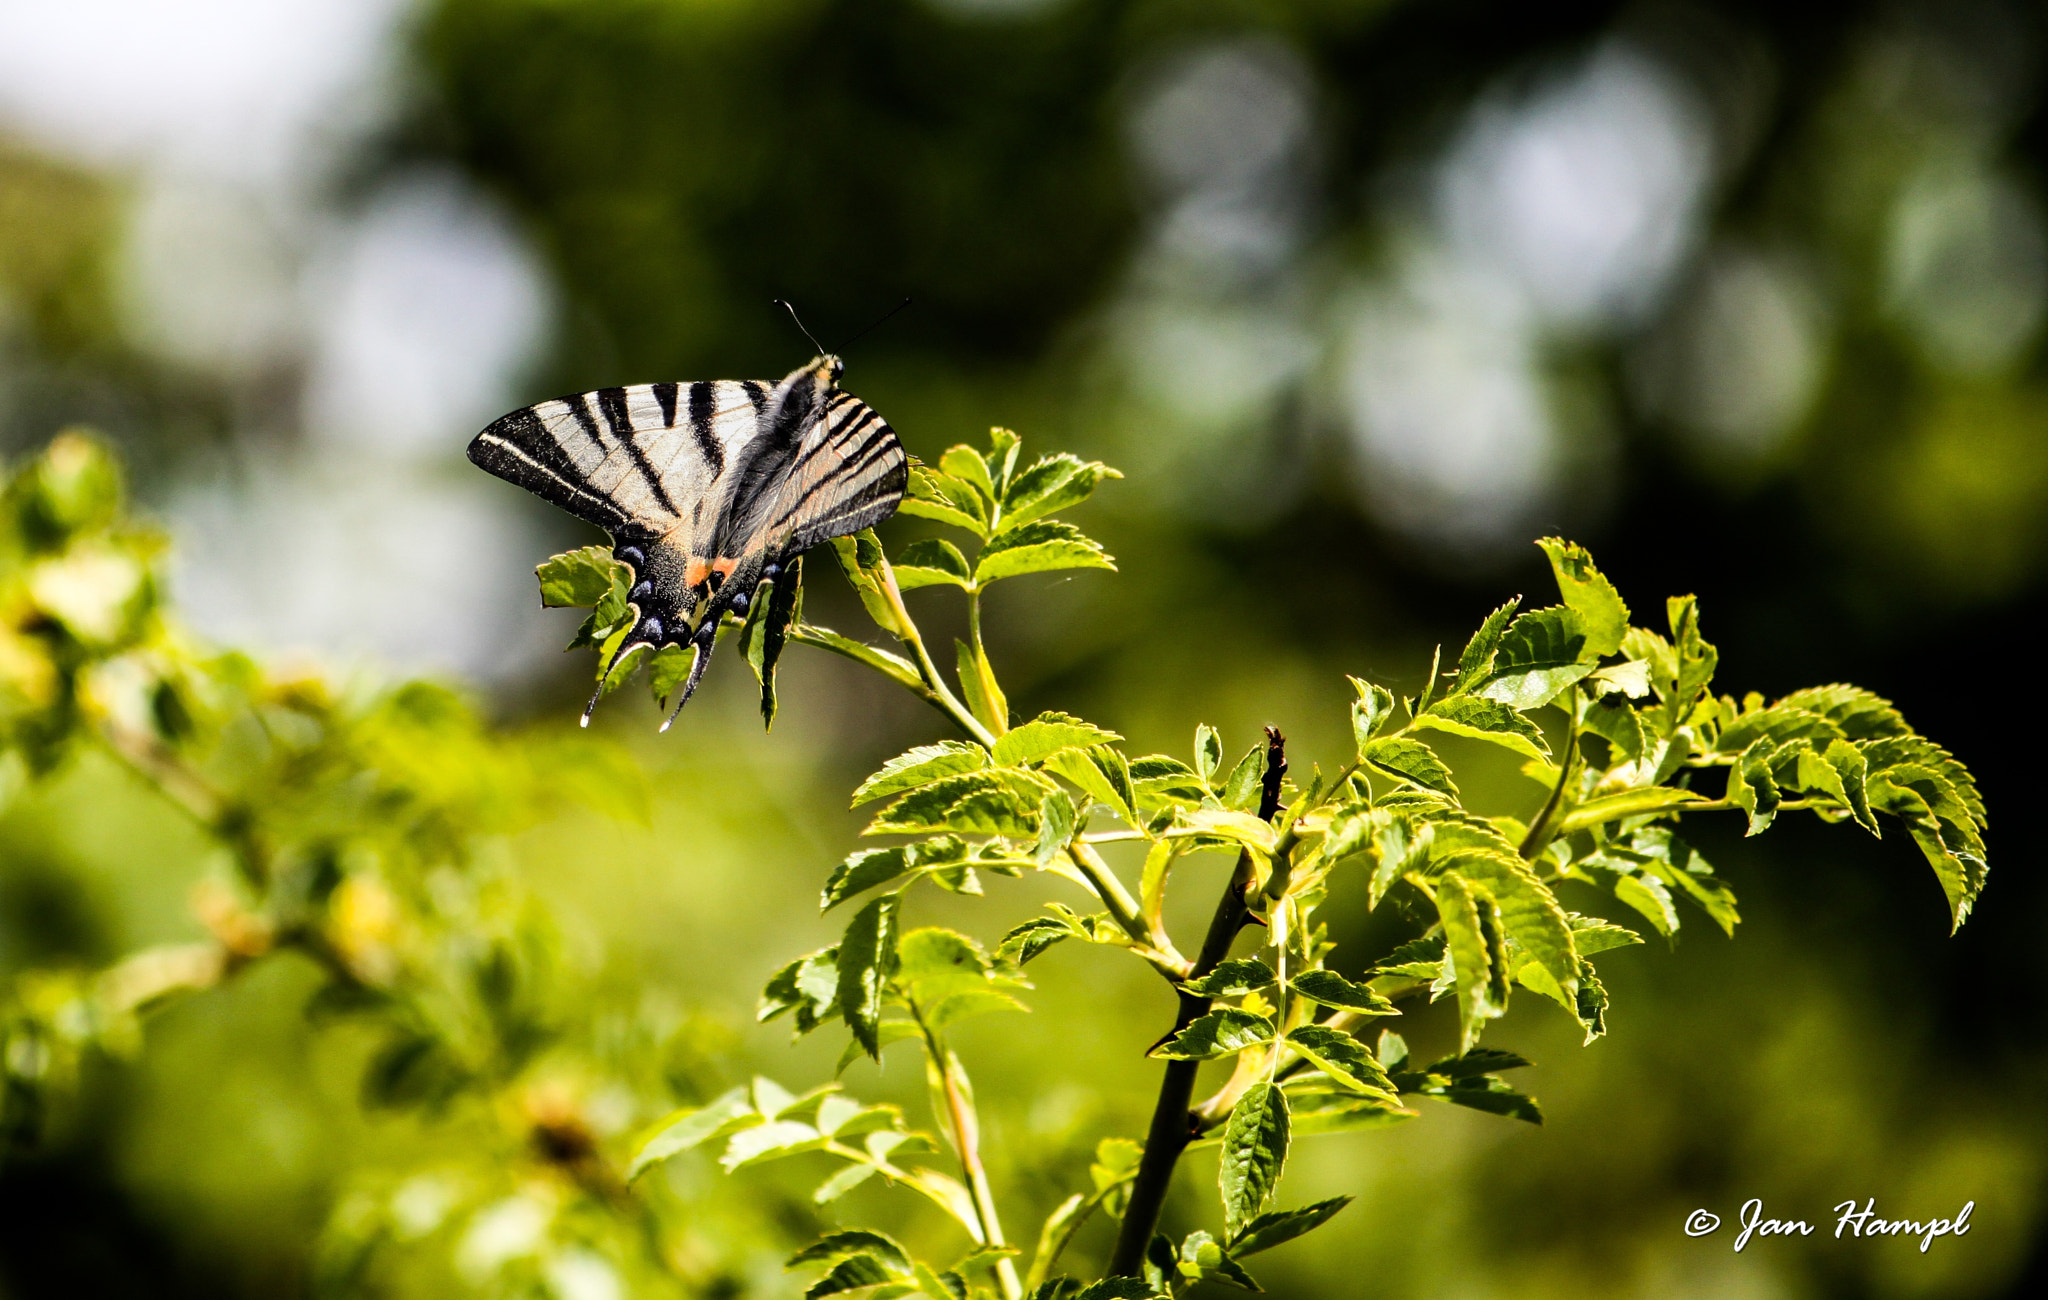 Photograph Butterfly by Jan Hampl on 500px